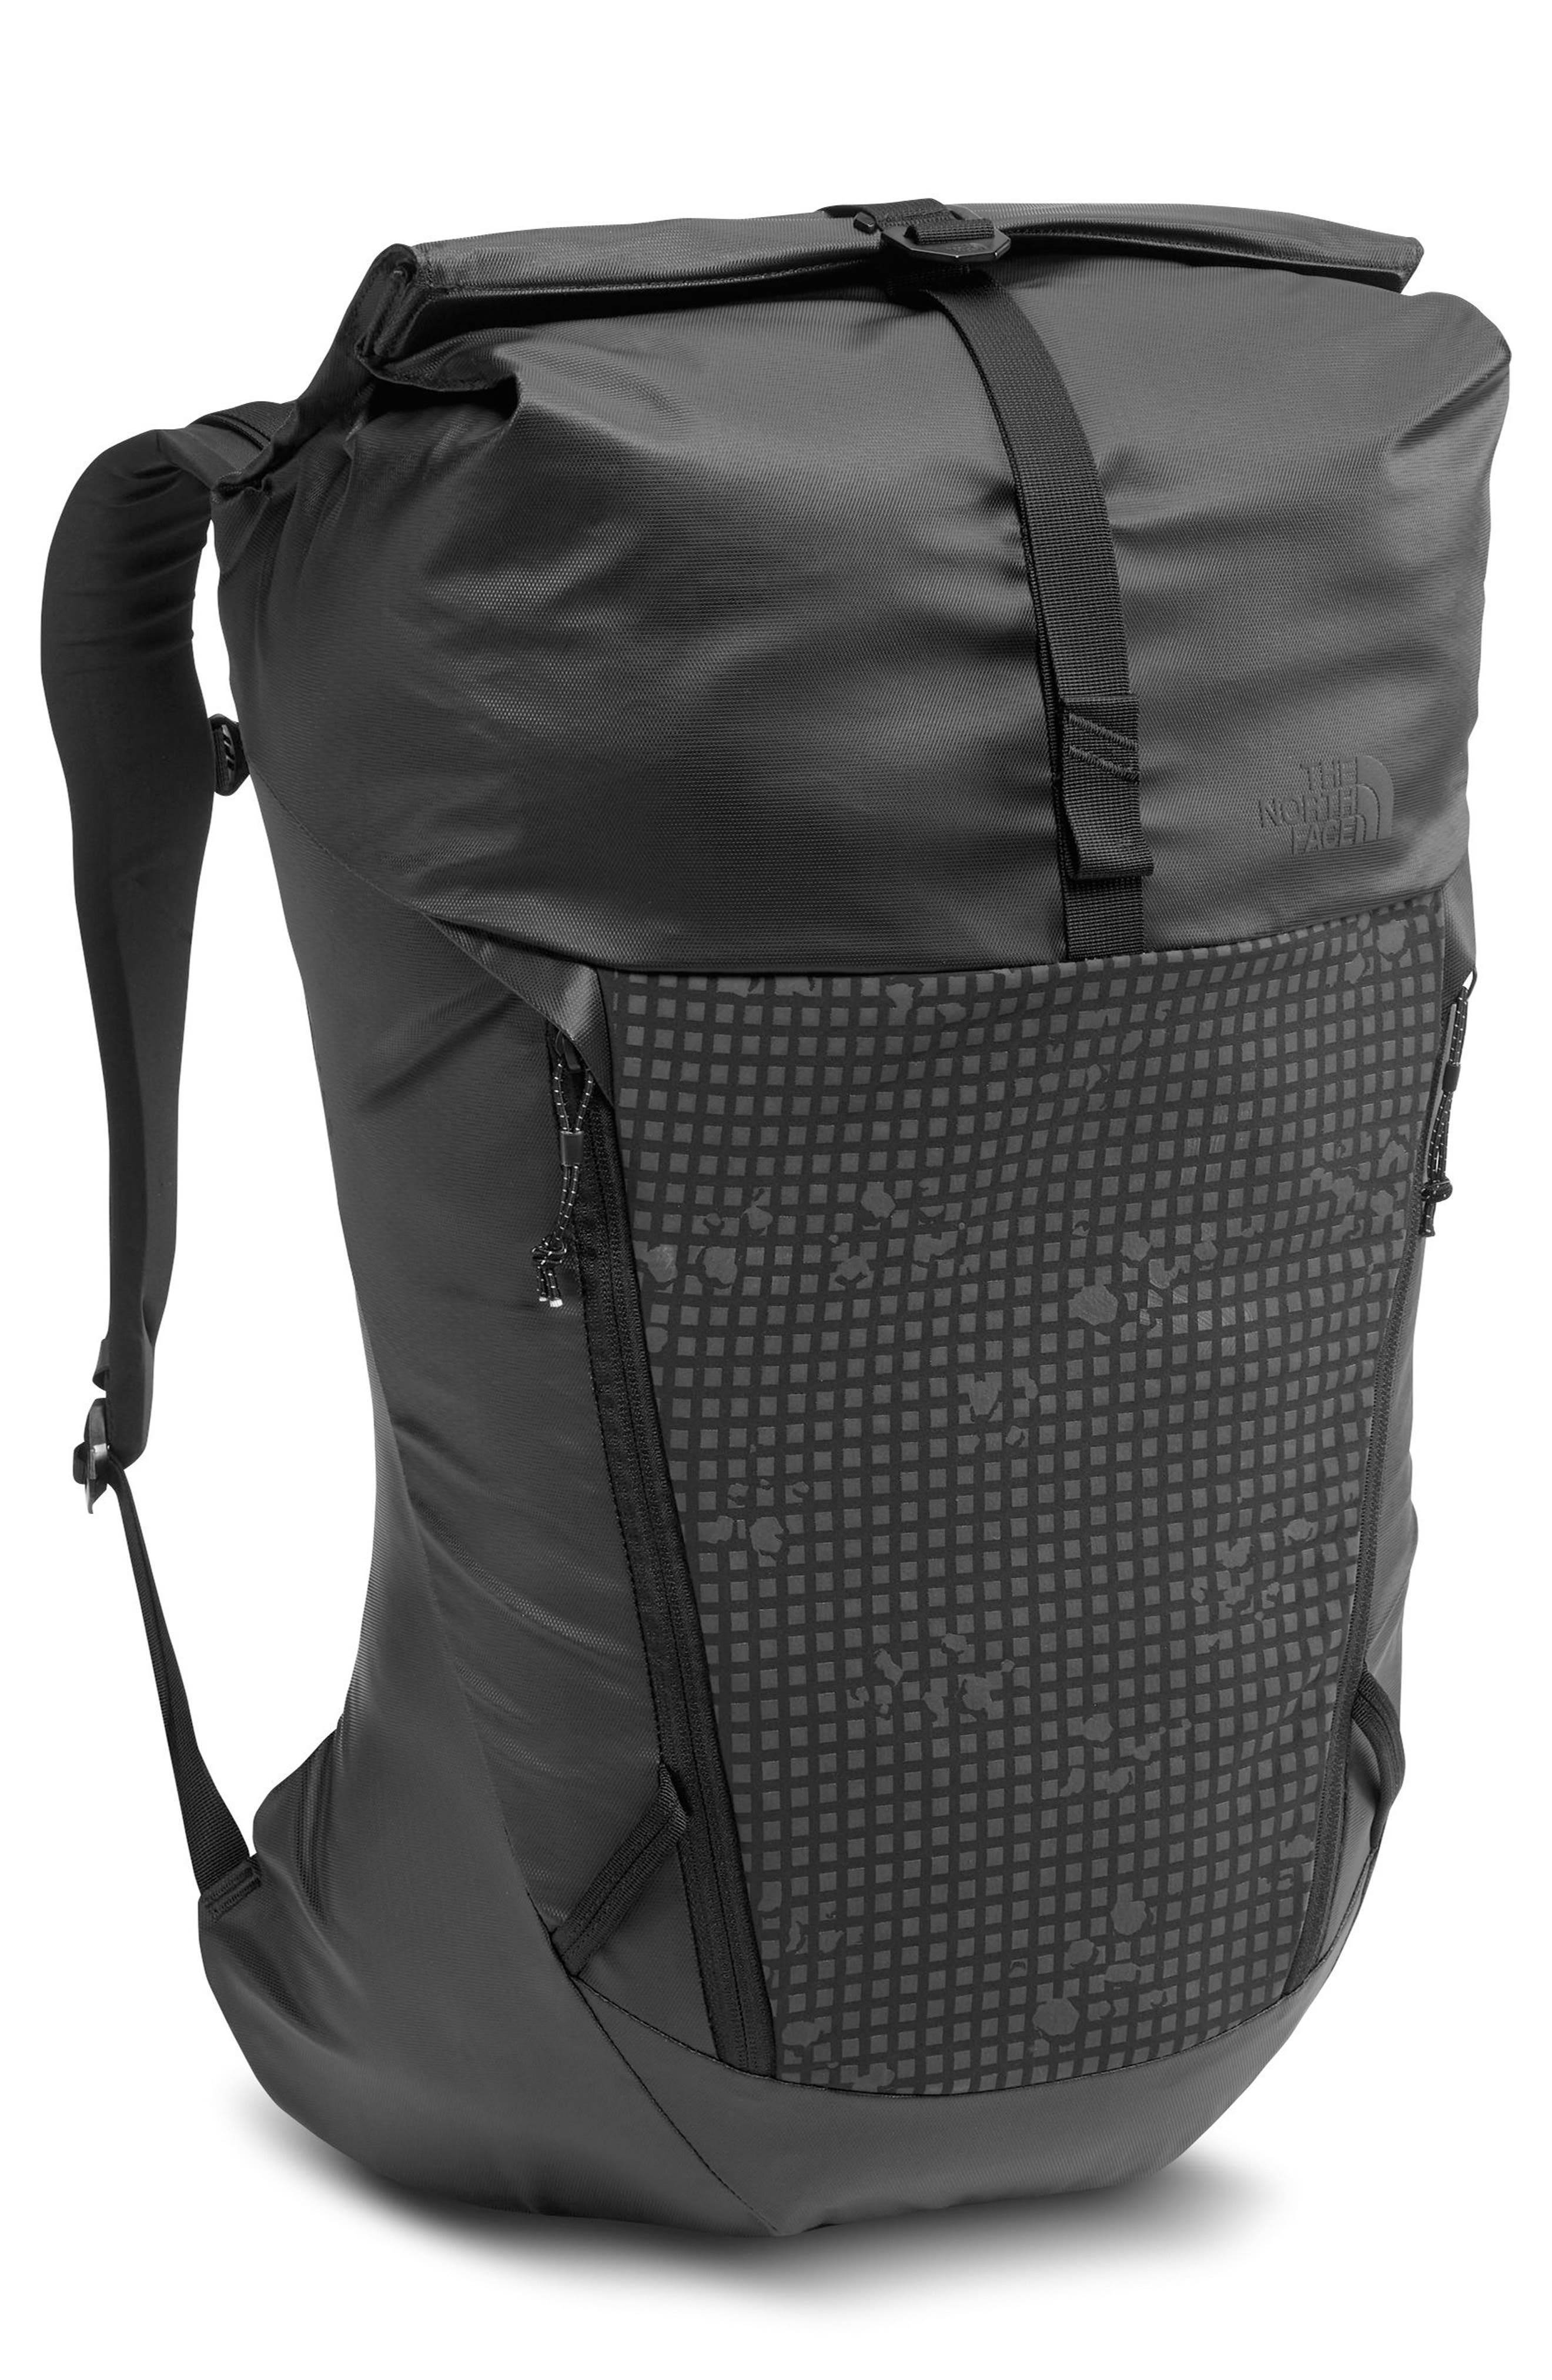 Rovara Backpack,                             Main thumbnail 1, color,                             Tnf Black